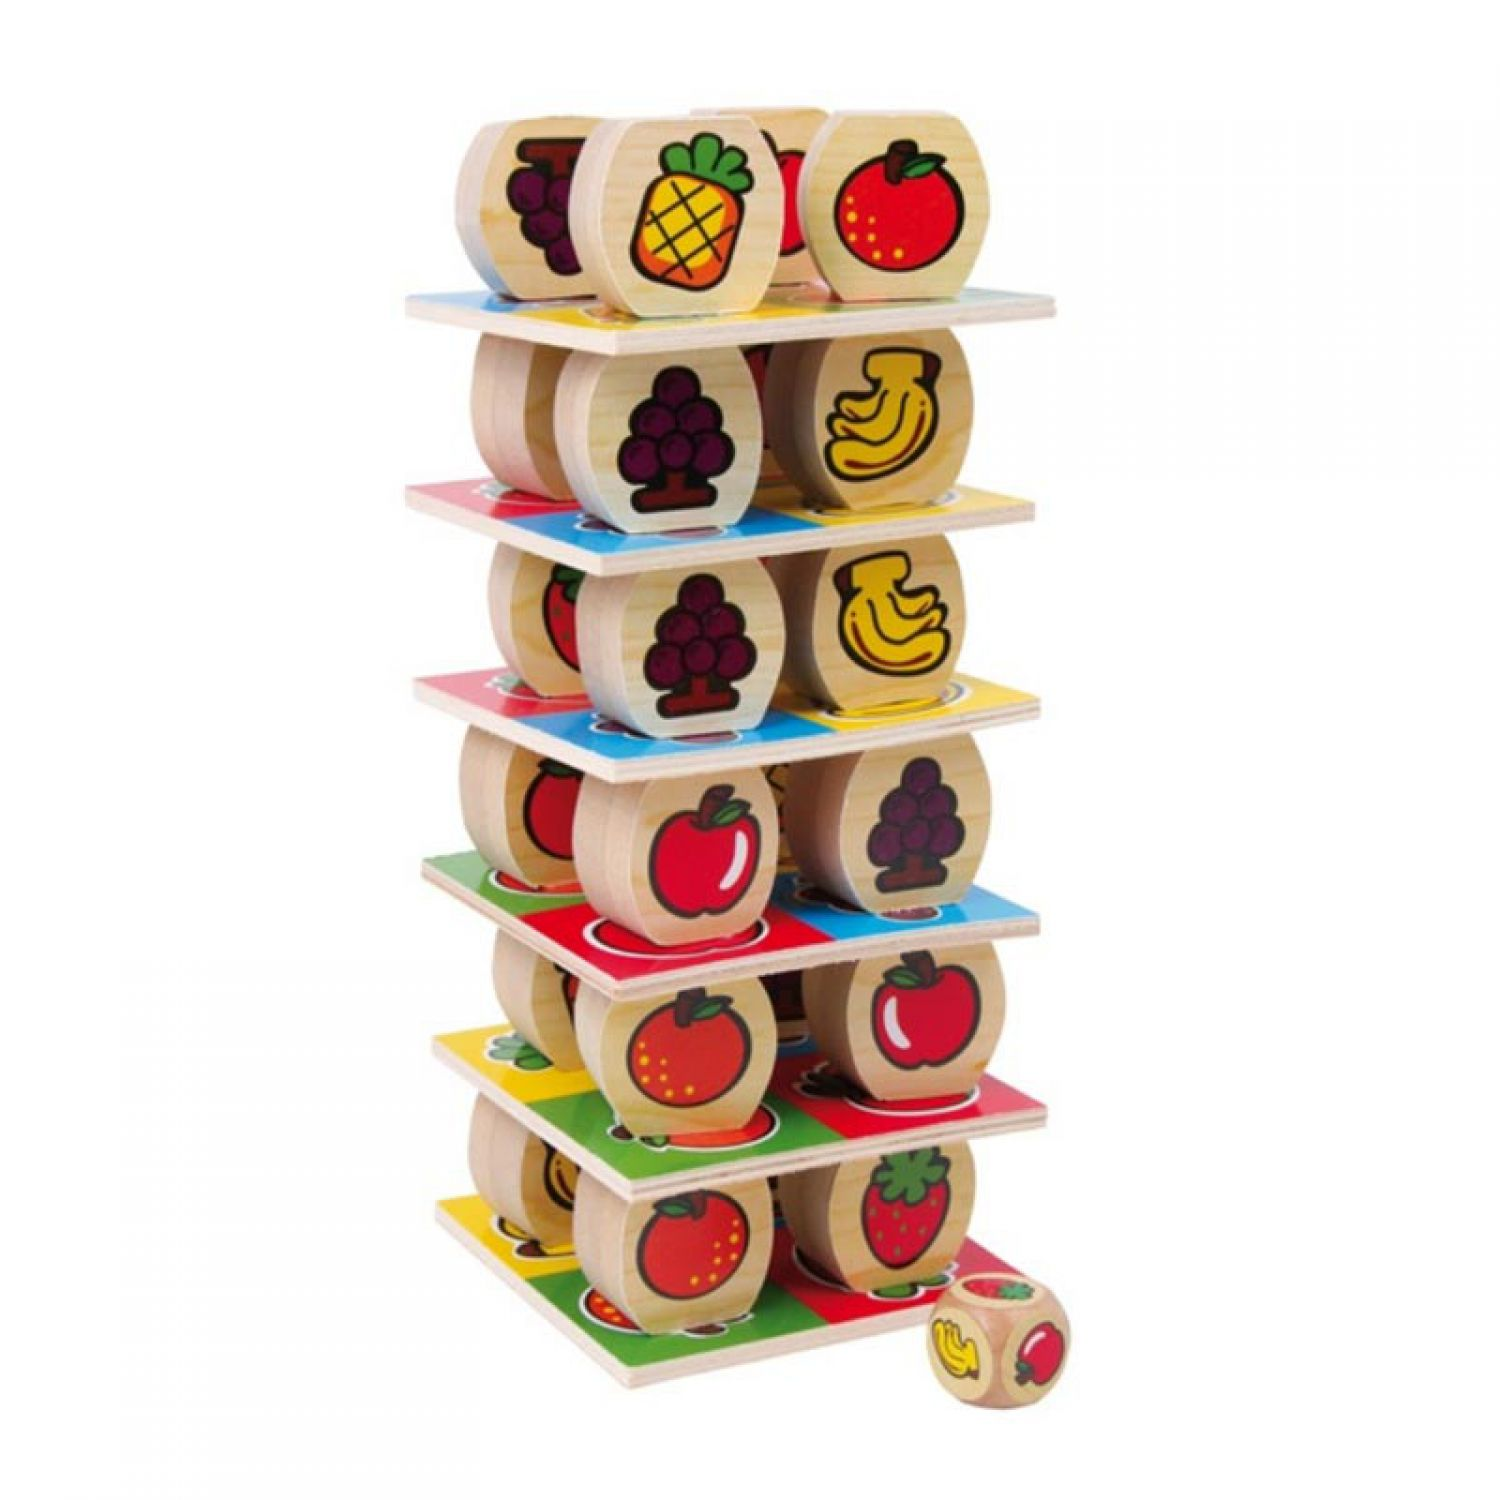 Fruit Tower Stacking Game Wood Wooden Toy Motor Skill Children s